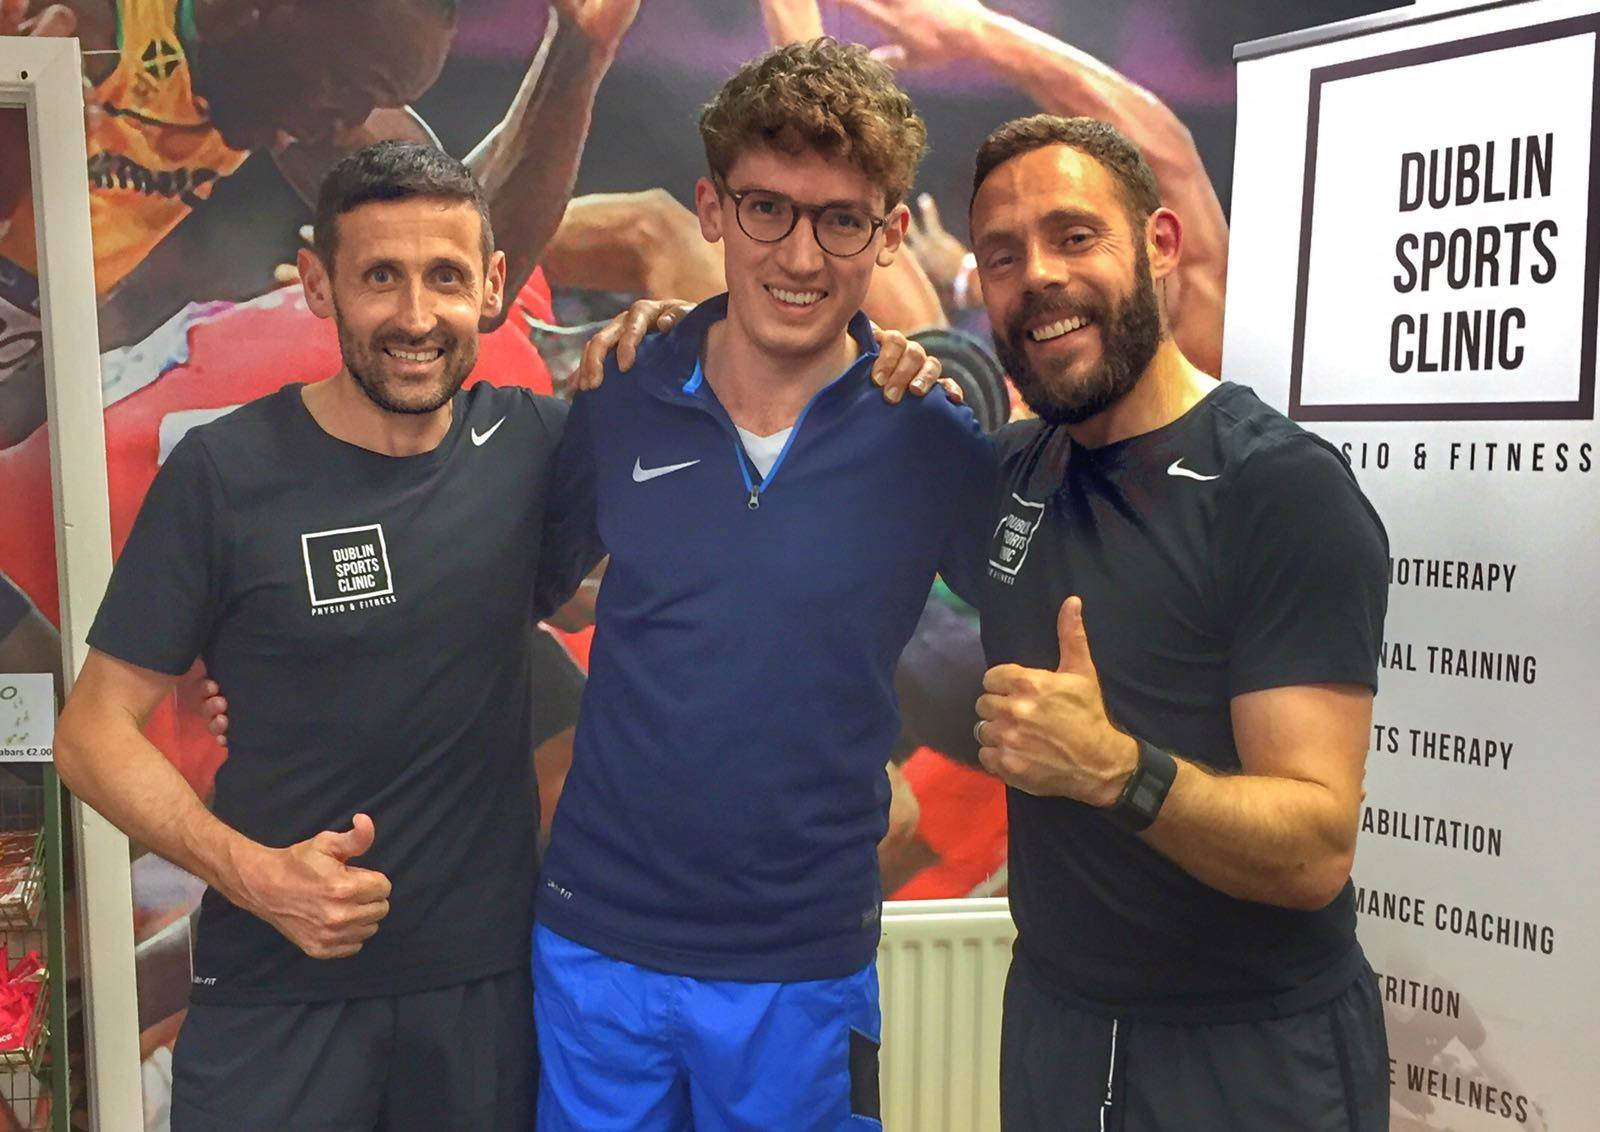 Young professional starts fitness training with two former elite athletes.